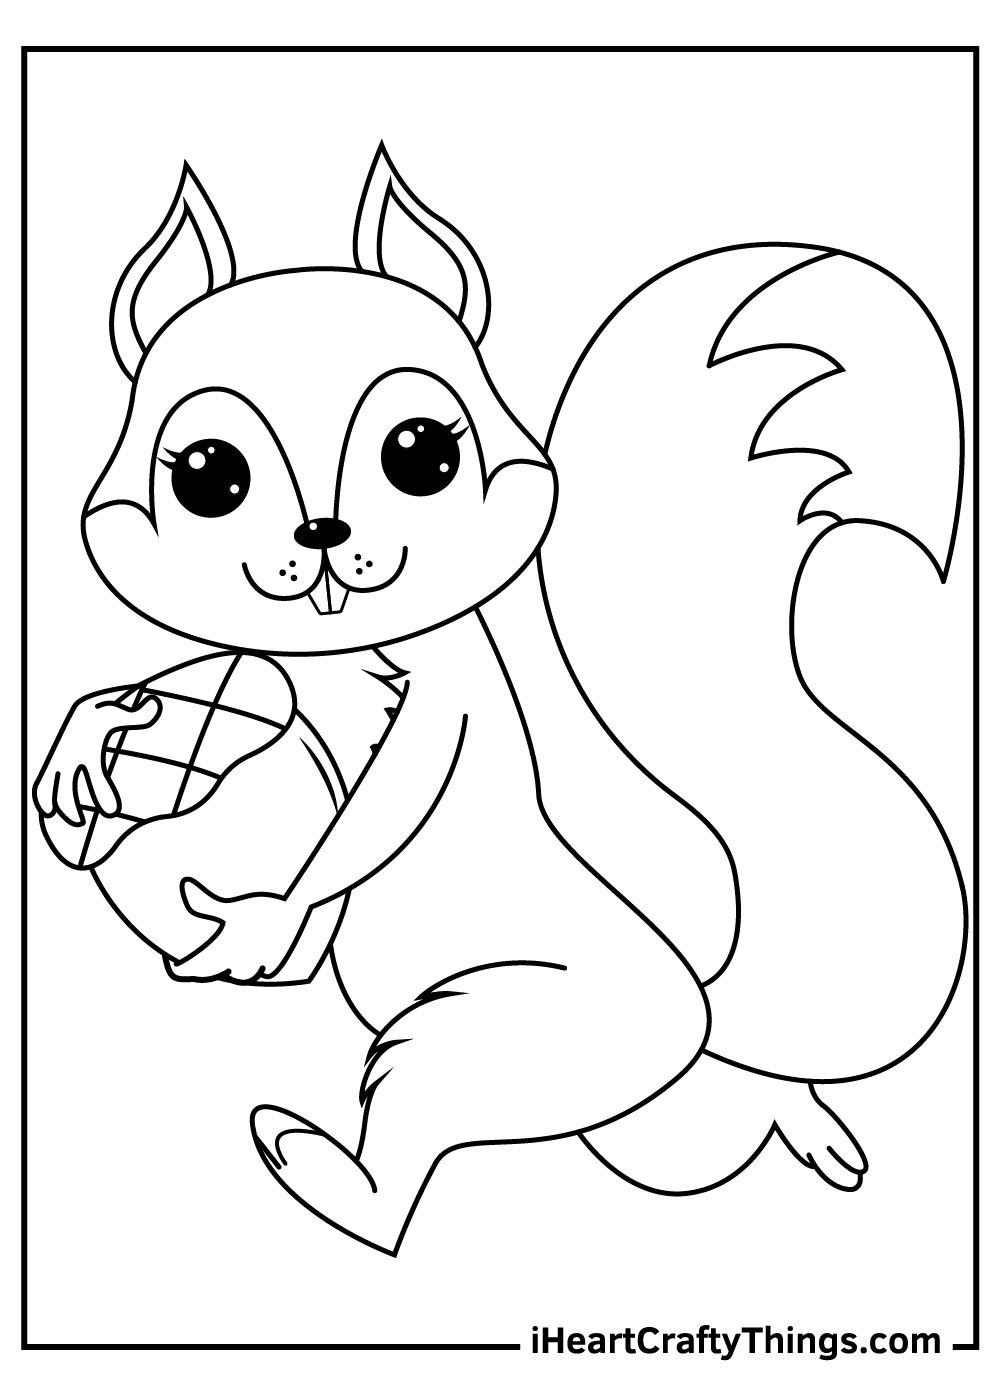 realistic free printable squirrels coloring pages